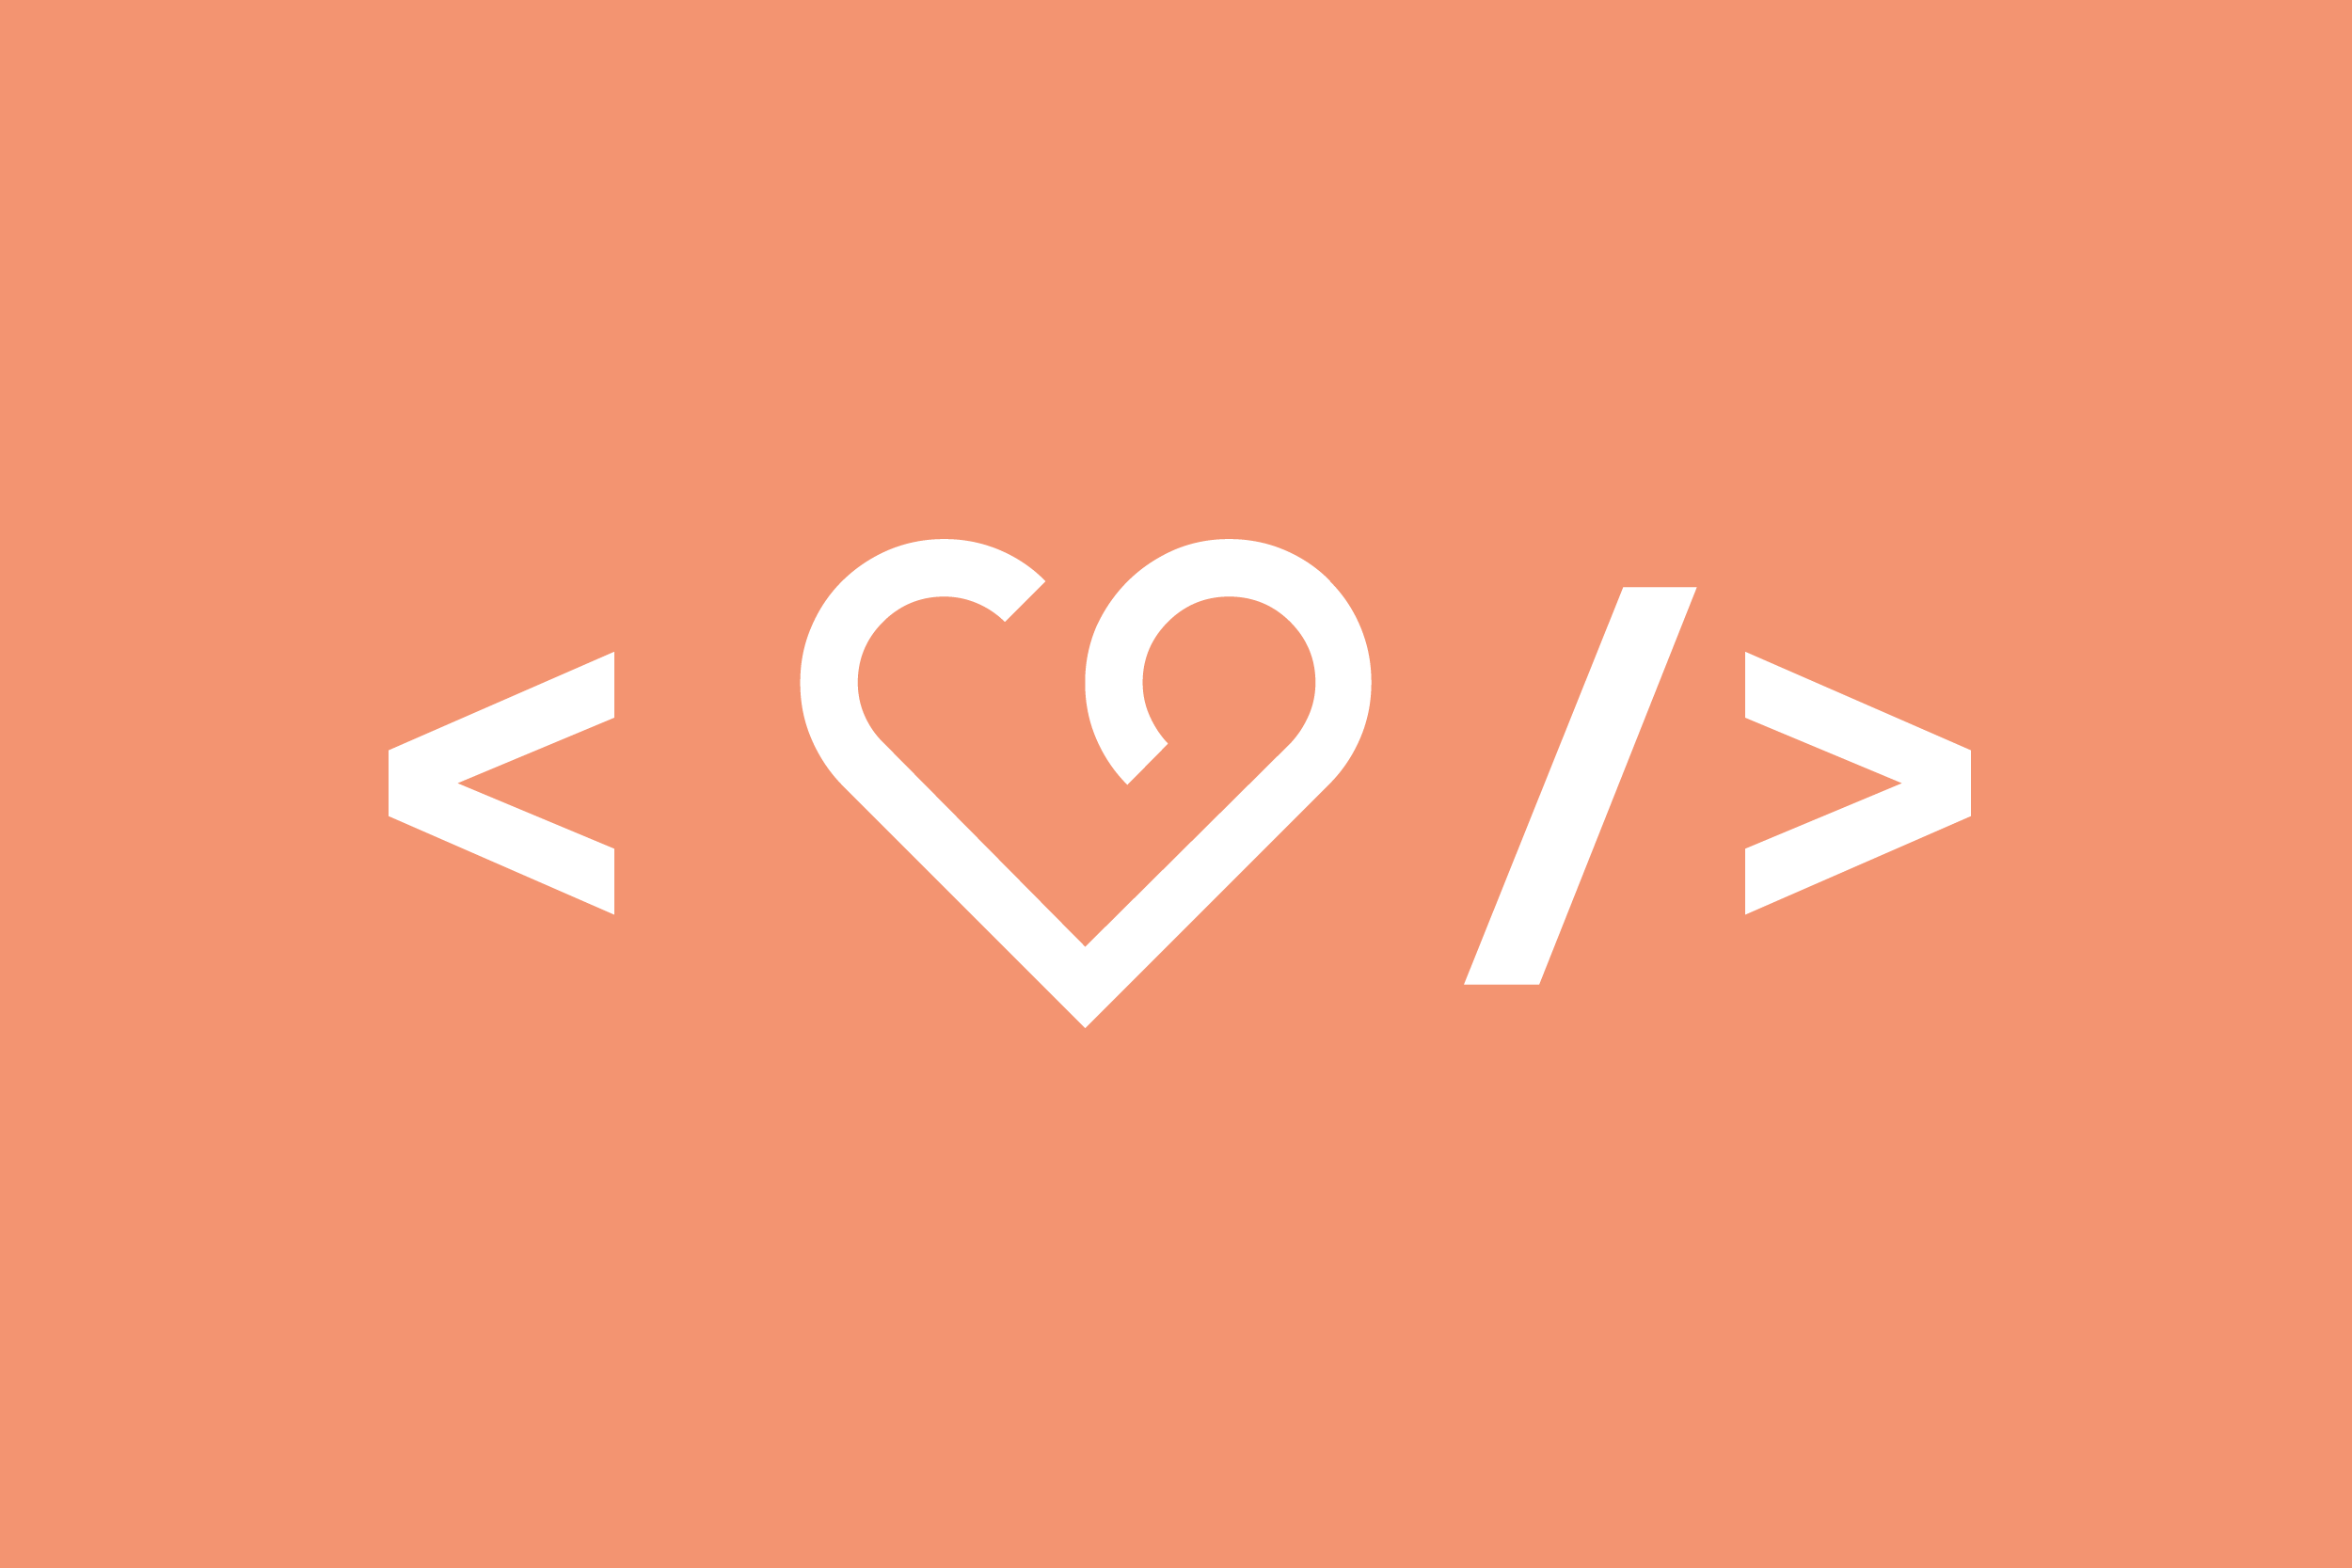 code-tag-2500x1667.png